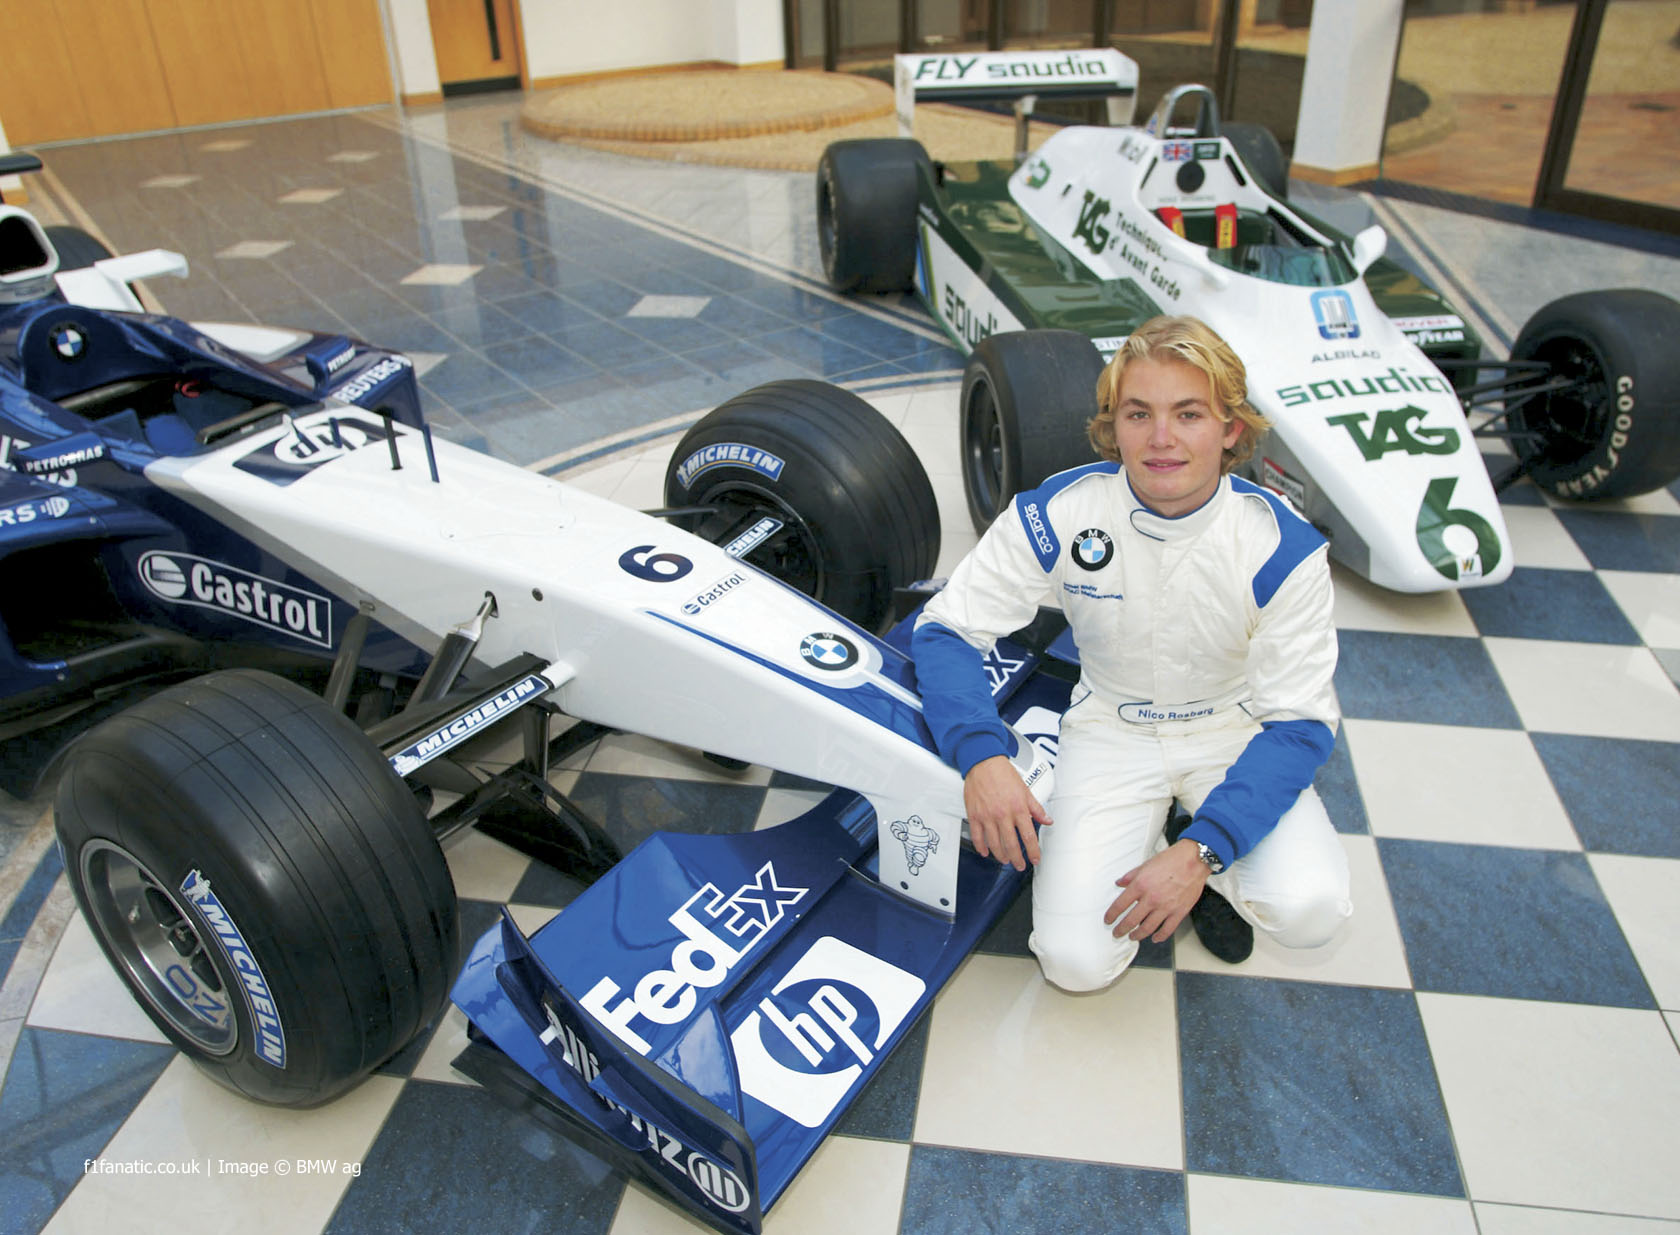 Nico Rosberg, Williams, Circuit de Catalunya, 2002